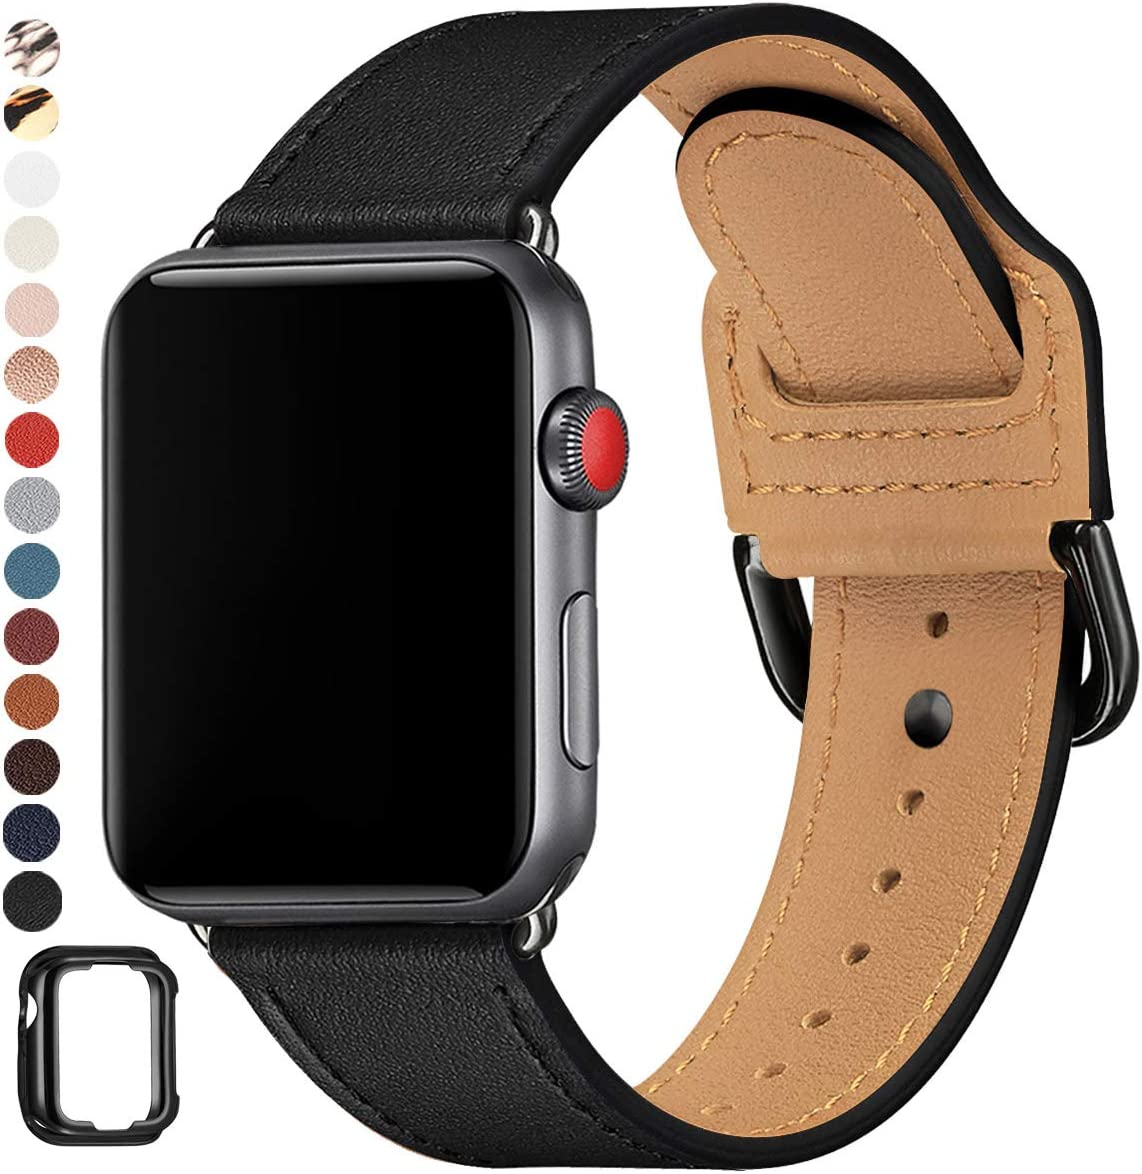 POWER PRIMACY Bands Compatible with Apple Watch Band 38mm 40mm 42mm 44mm, Top Grain Leather Smart Watch Strap Compatible for Men Women iWatch Series 6 5 4 3 2 1,SE (Black/Black, 42mm/44mm)